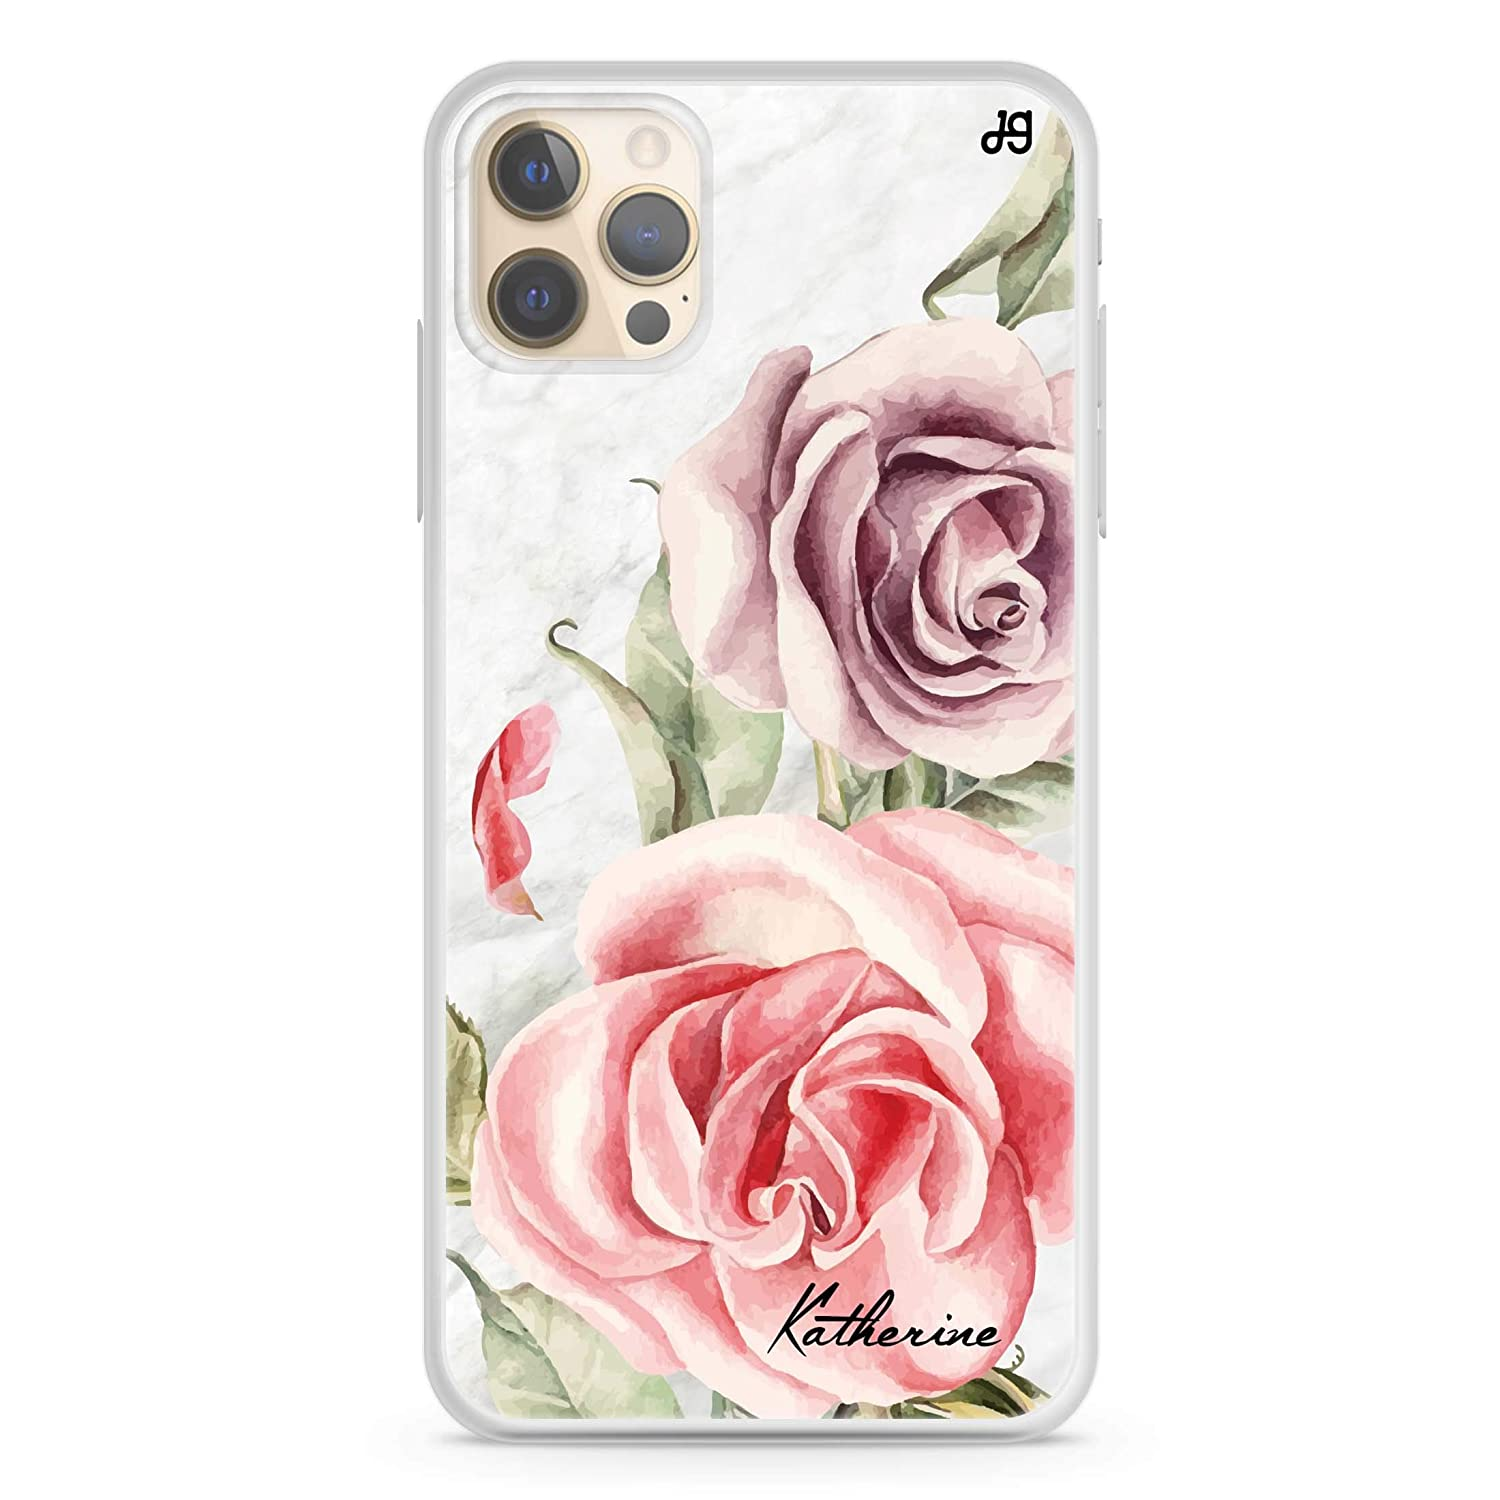 Marble Rose iPhone 12 Pro Max Soft iPho Case 2021 autumn and winter new Latest item Clear